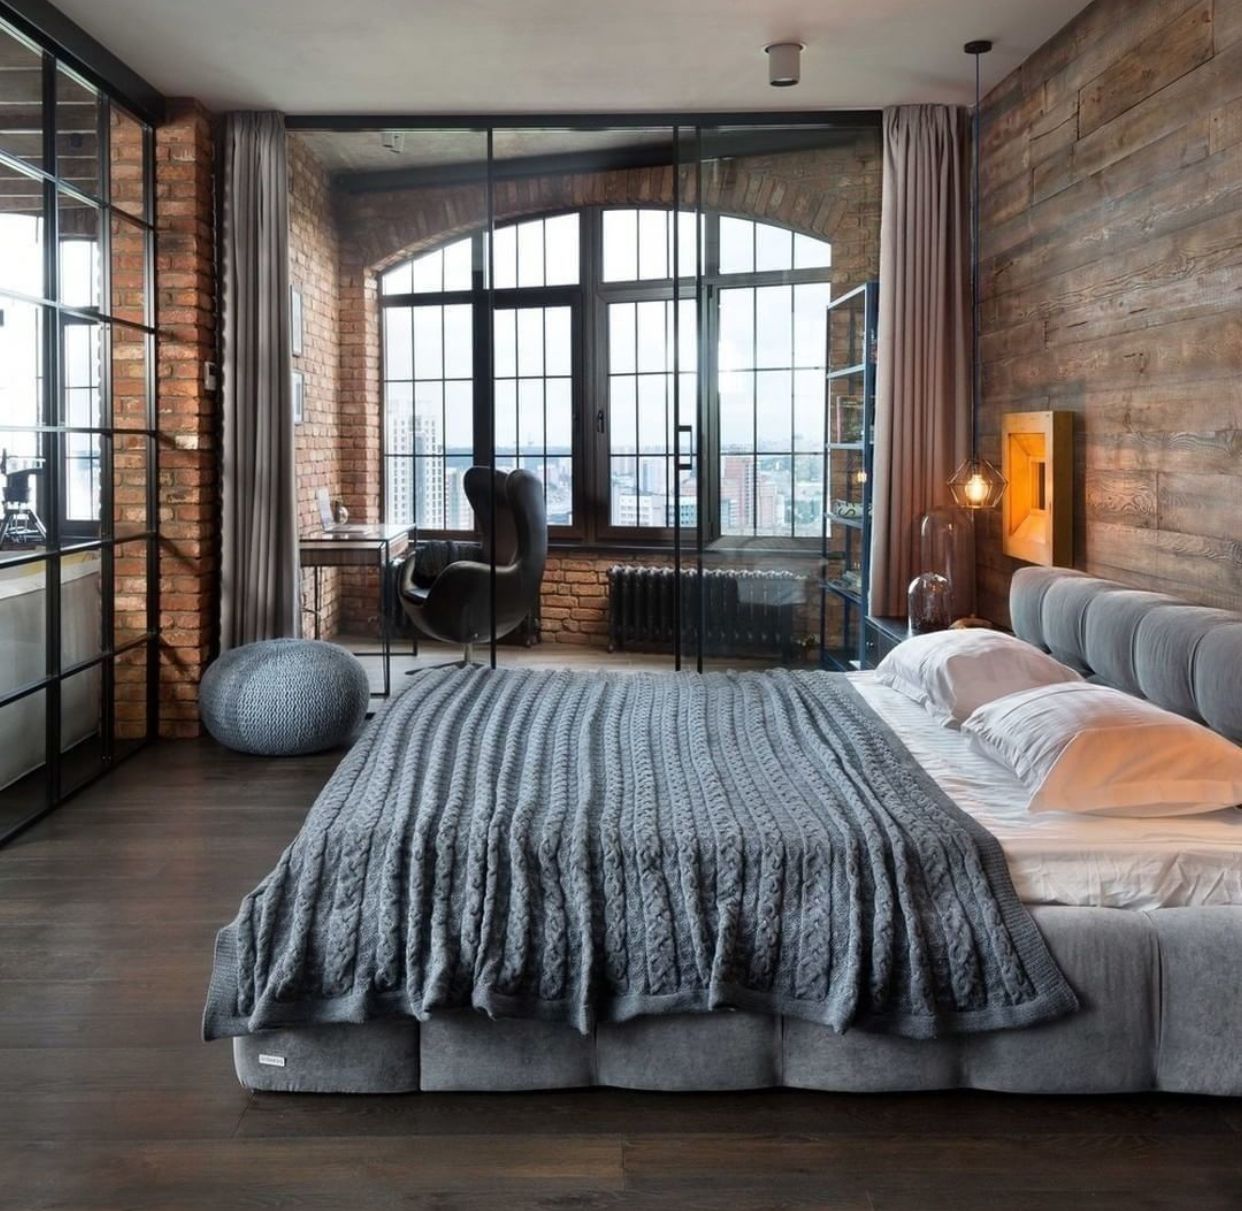 design bedroom%0A Exposed brick bedroom with private glasses in workspace